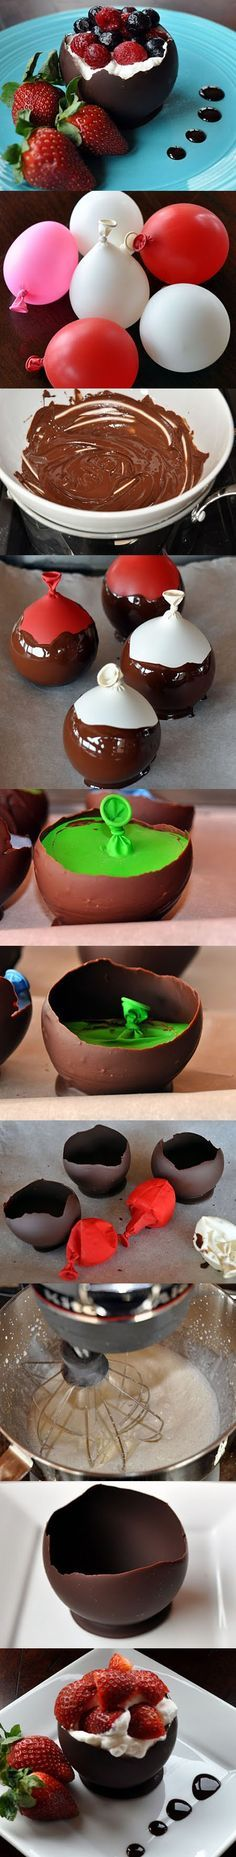 Chocolate bowl!